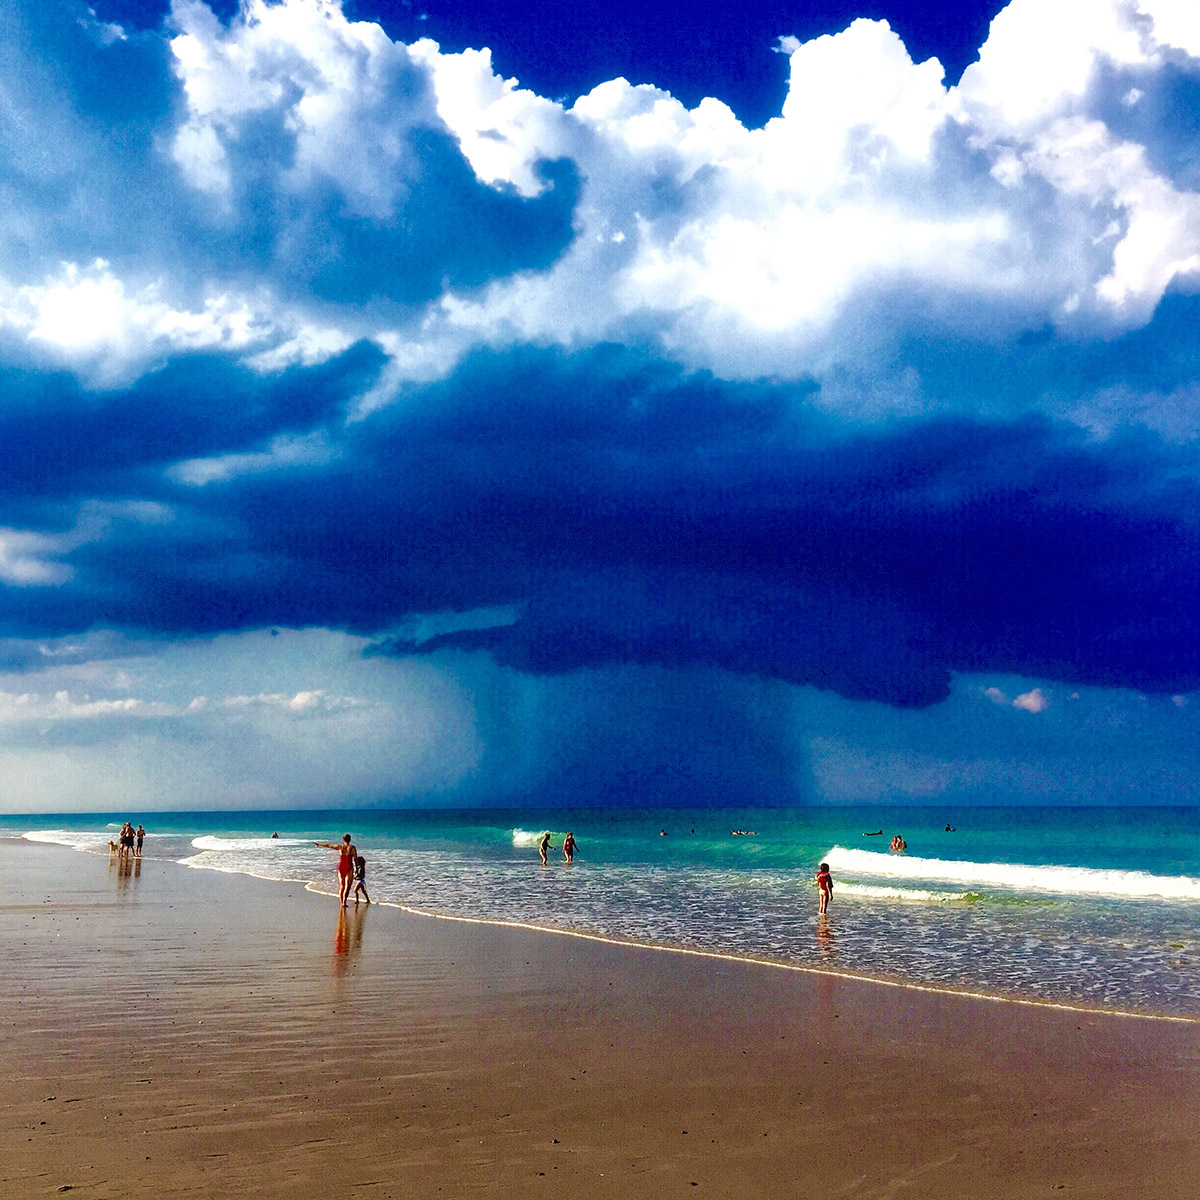 A photo of a beach in Cape Cod, MA showing a storm brewing in the sky. There are people walking along the shoreline in the distance